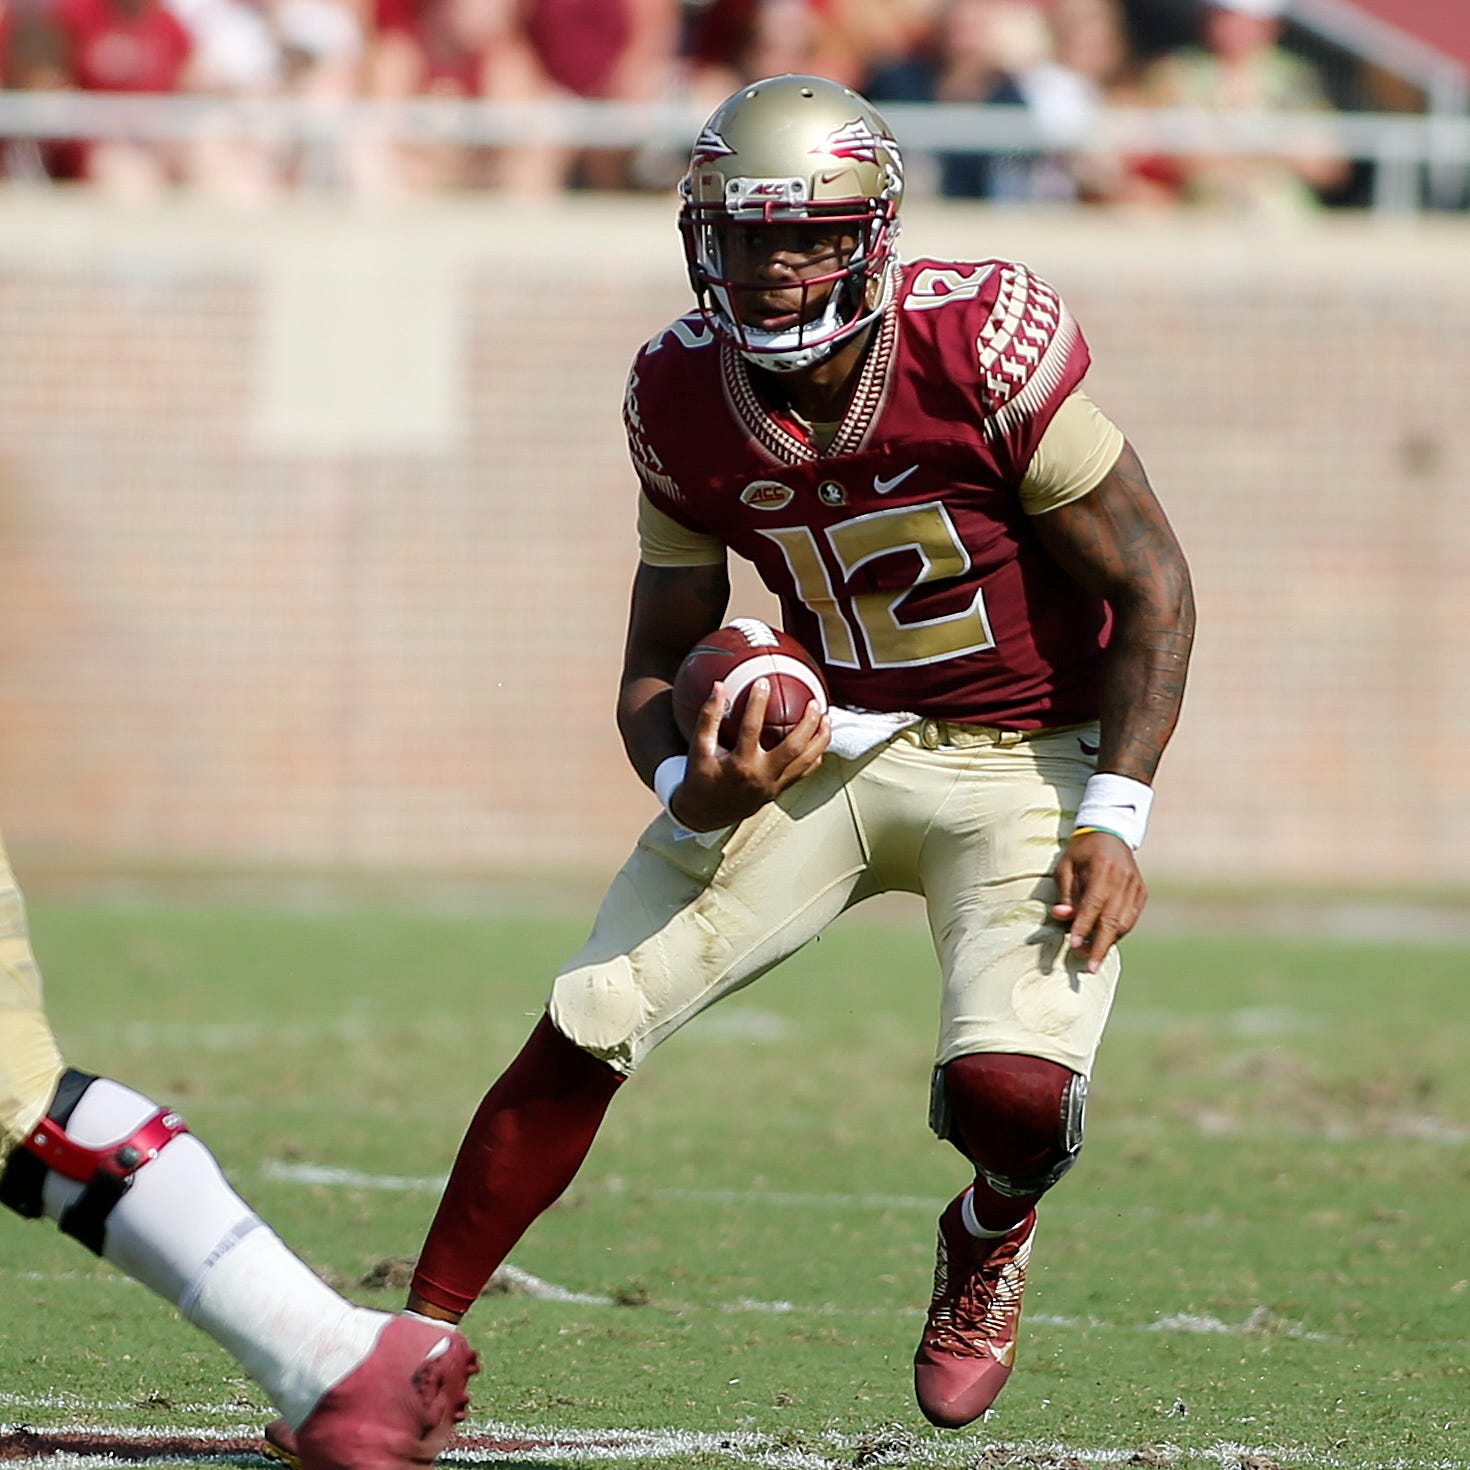 What keyed Florida State's early offensive outbreak against NIU?